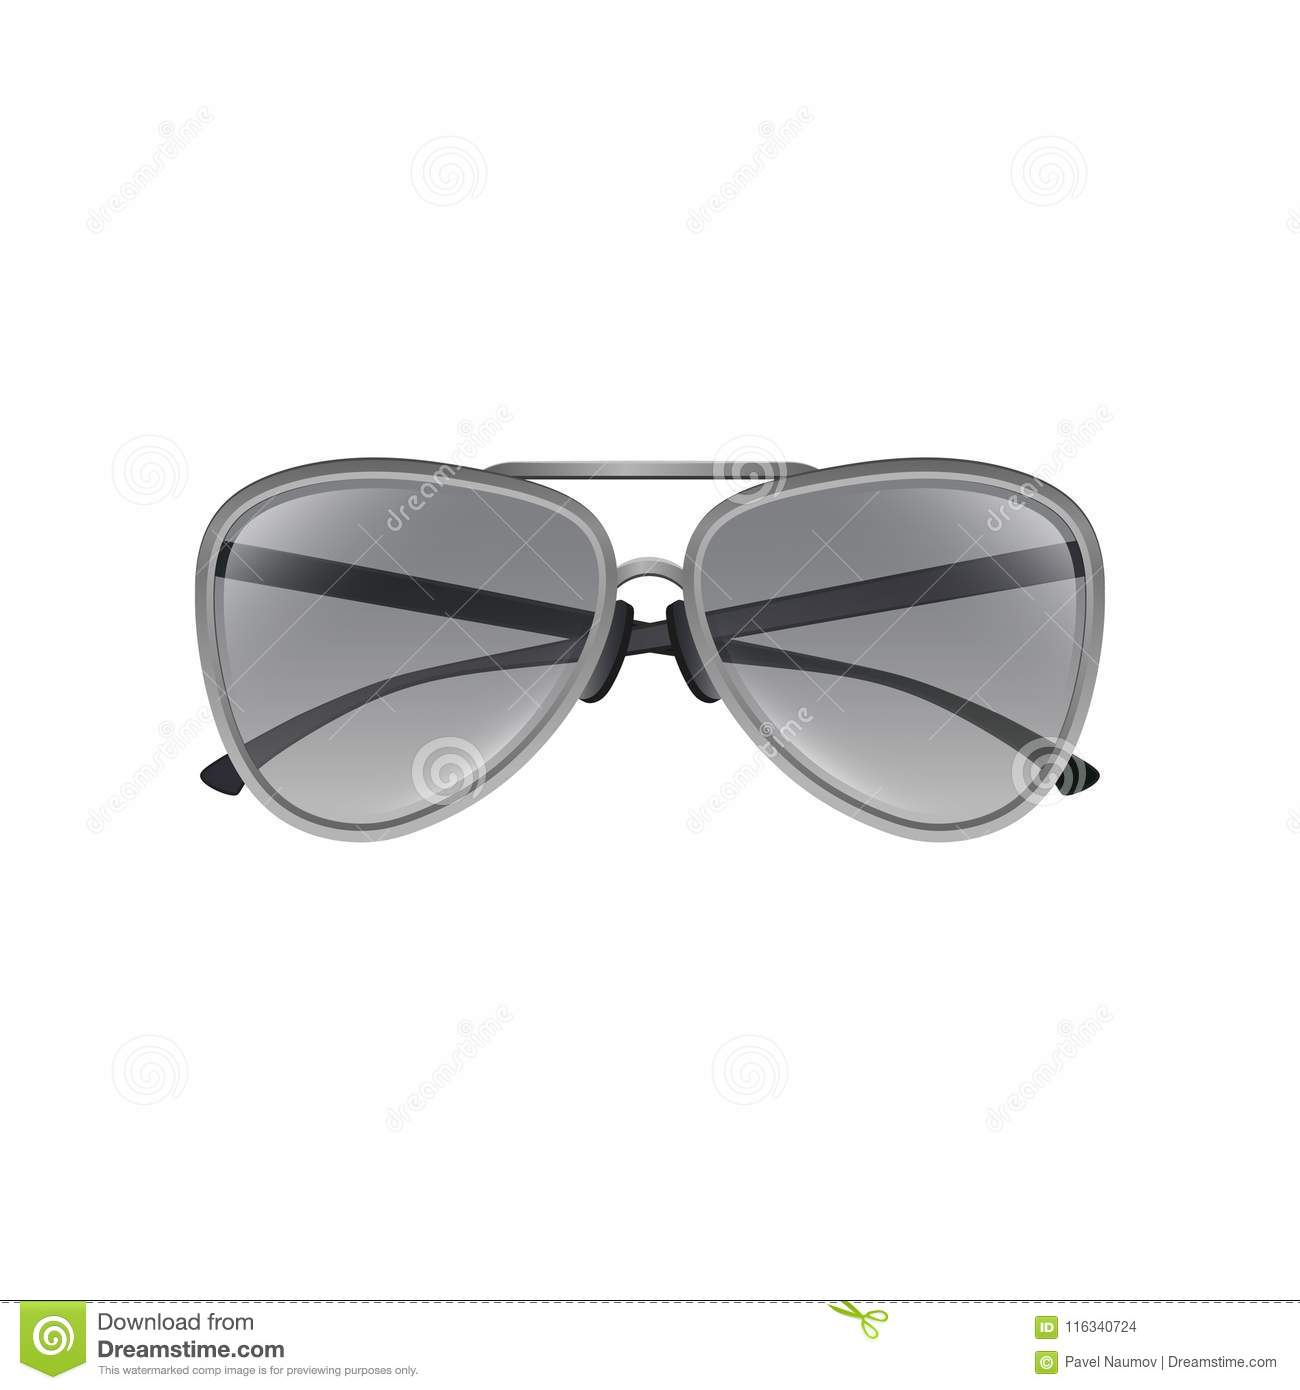 7e2d72896e Aviator Sunglasses With Gray Tinted Lenses